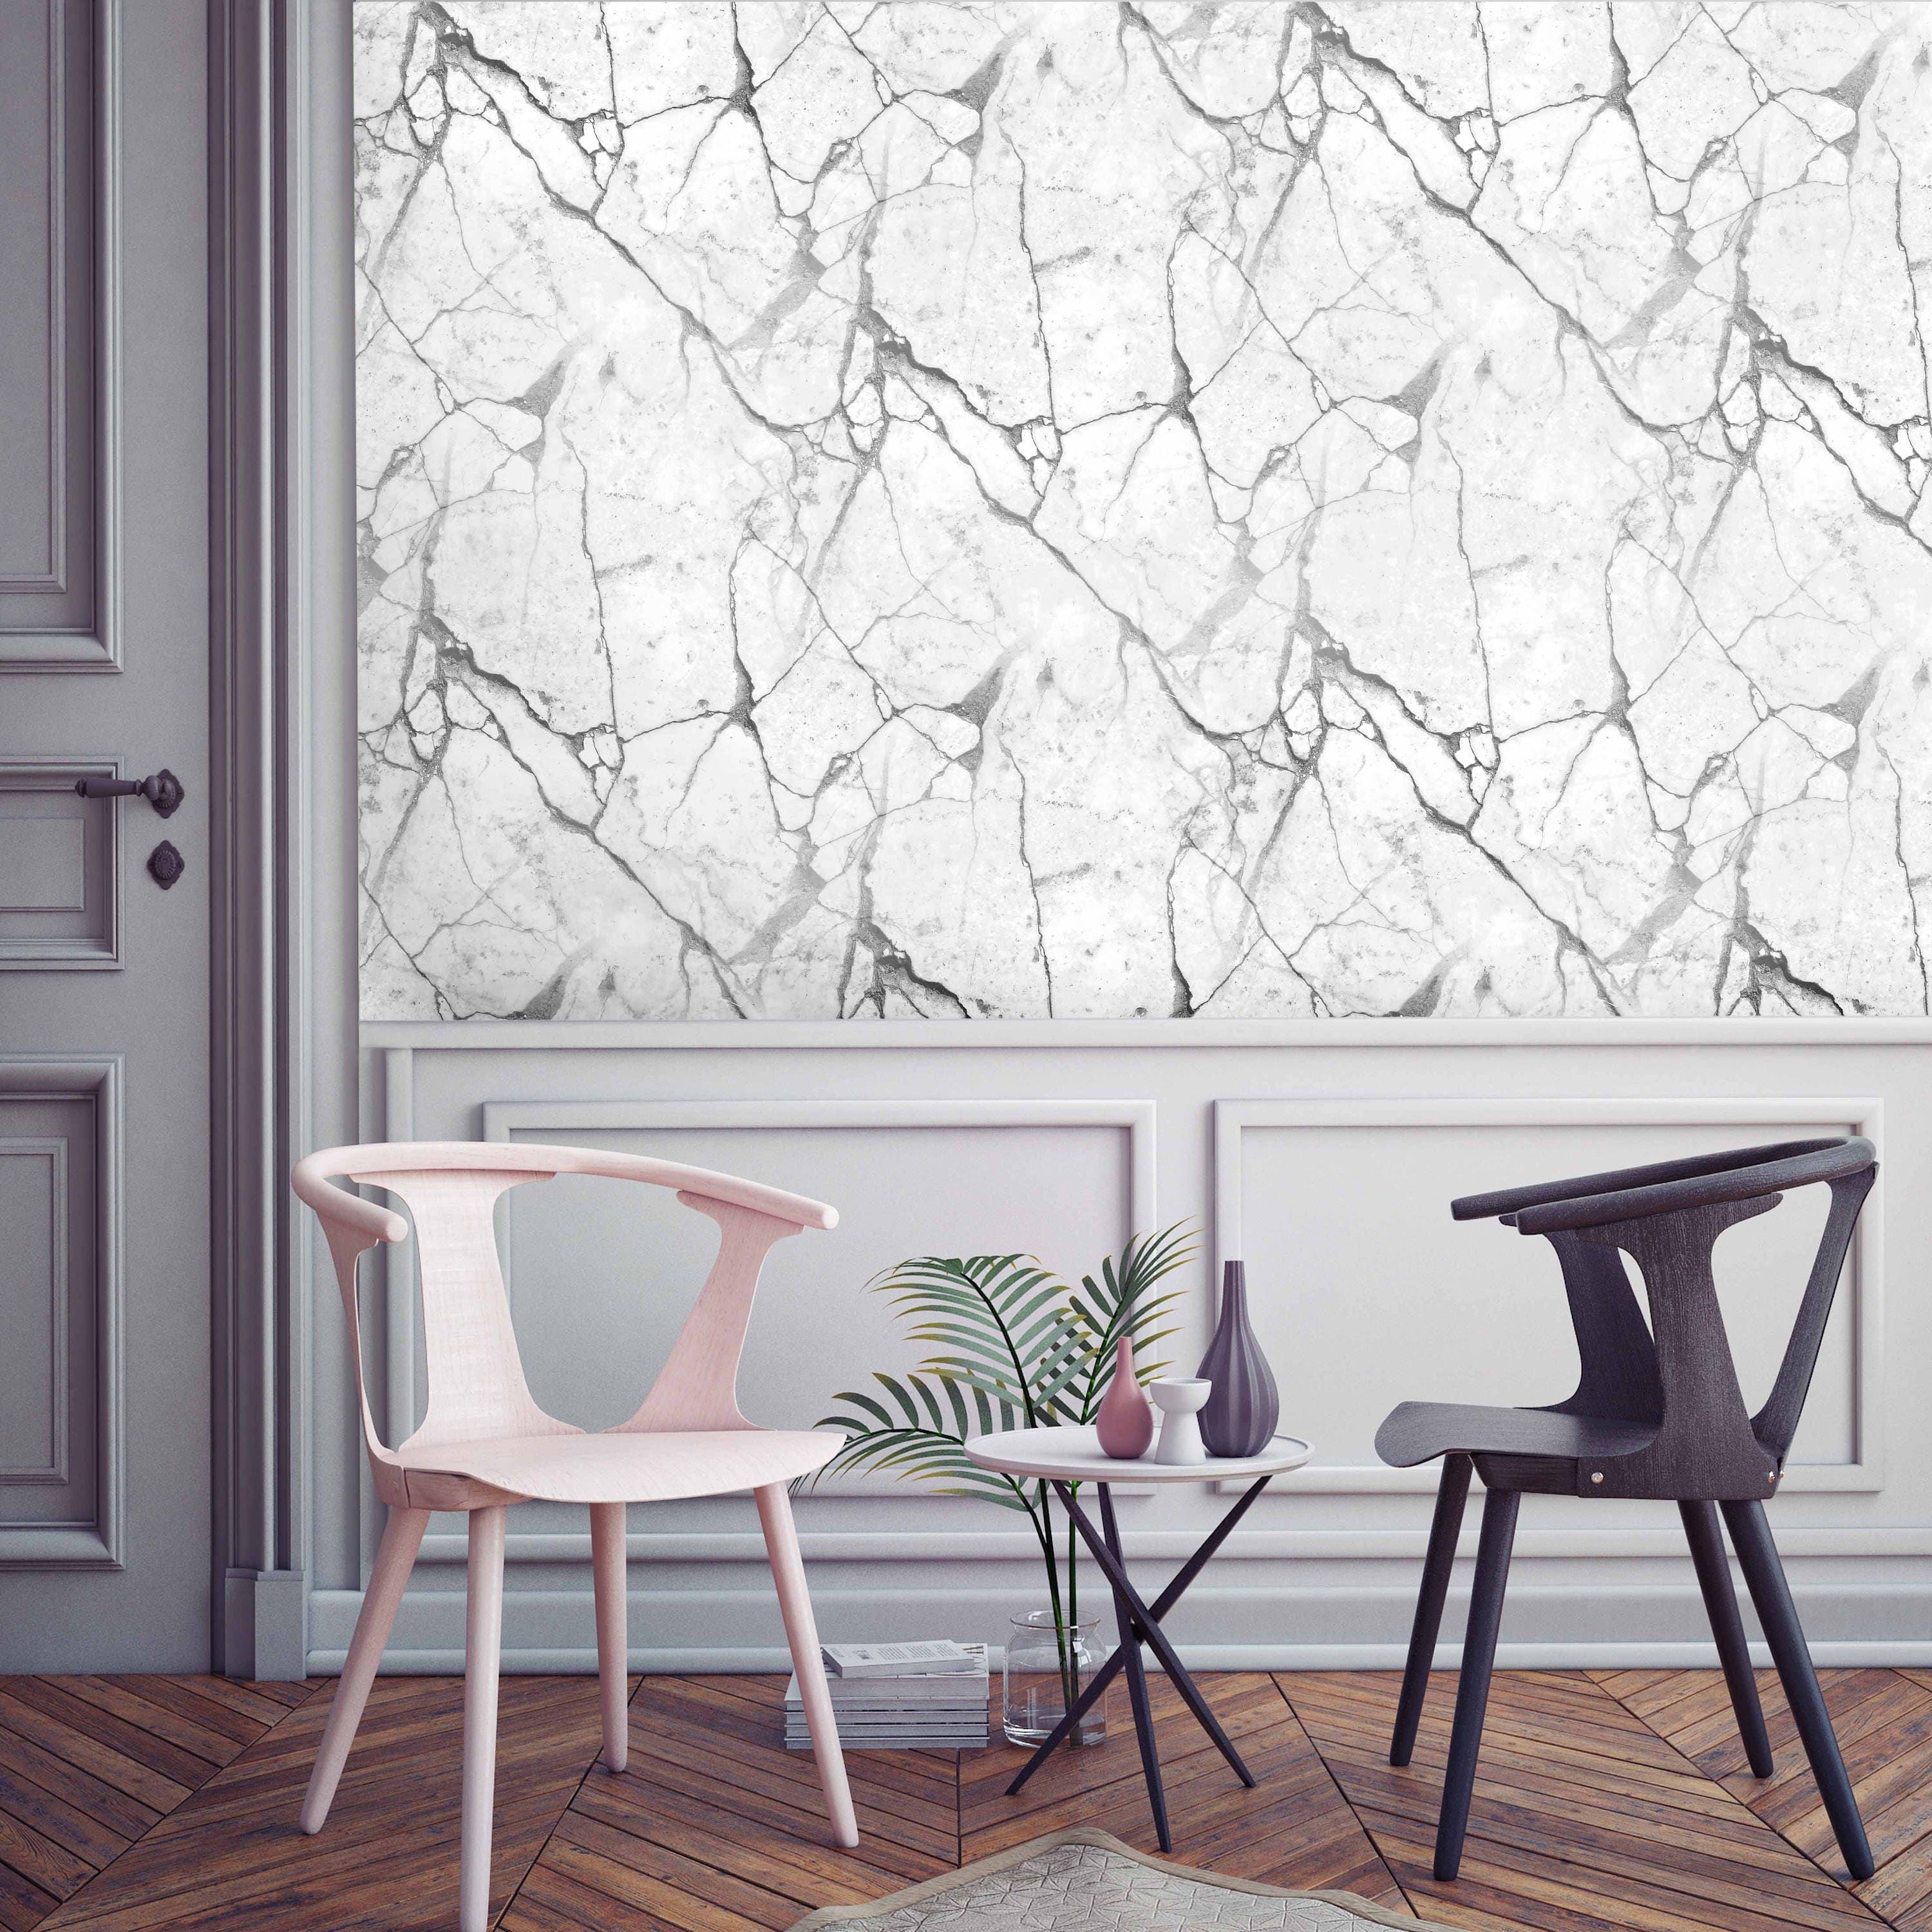 Download Wallpaper Marble Wall - il_fullxfull  Best Photo Reference_25771.jpg?version\u003d0